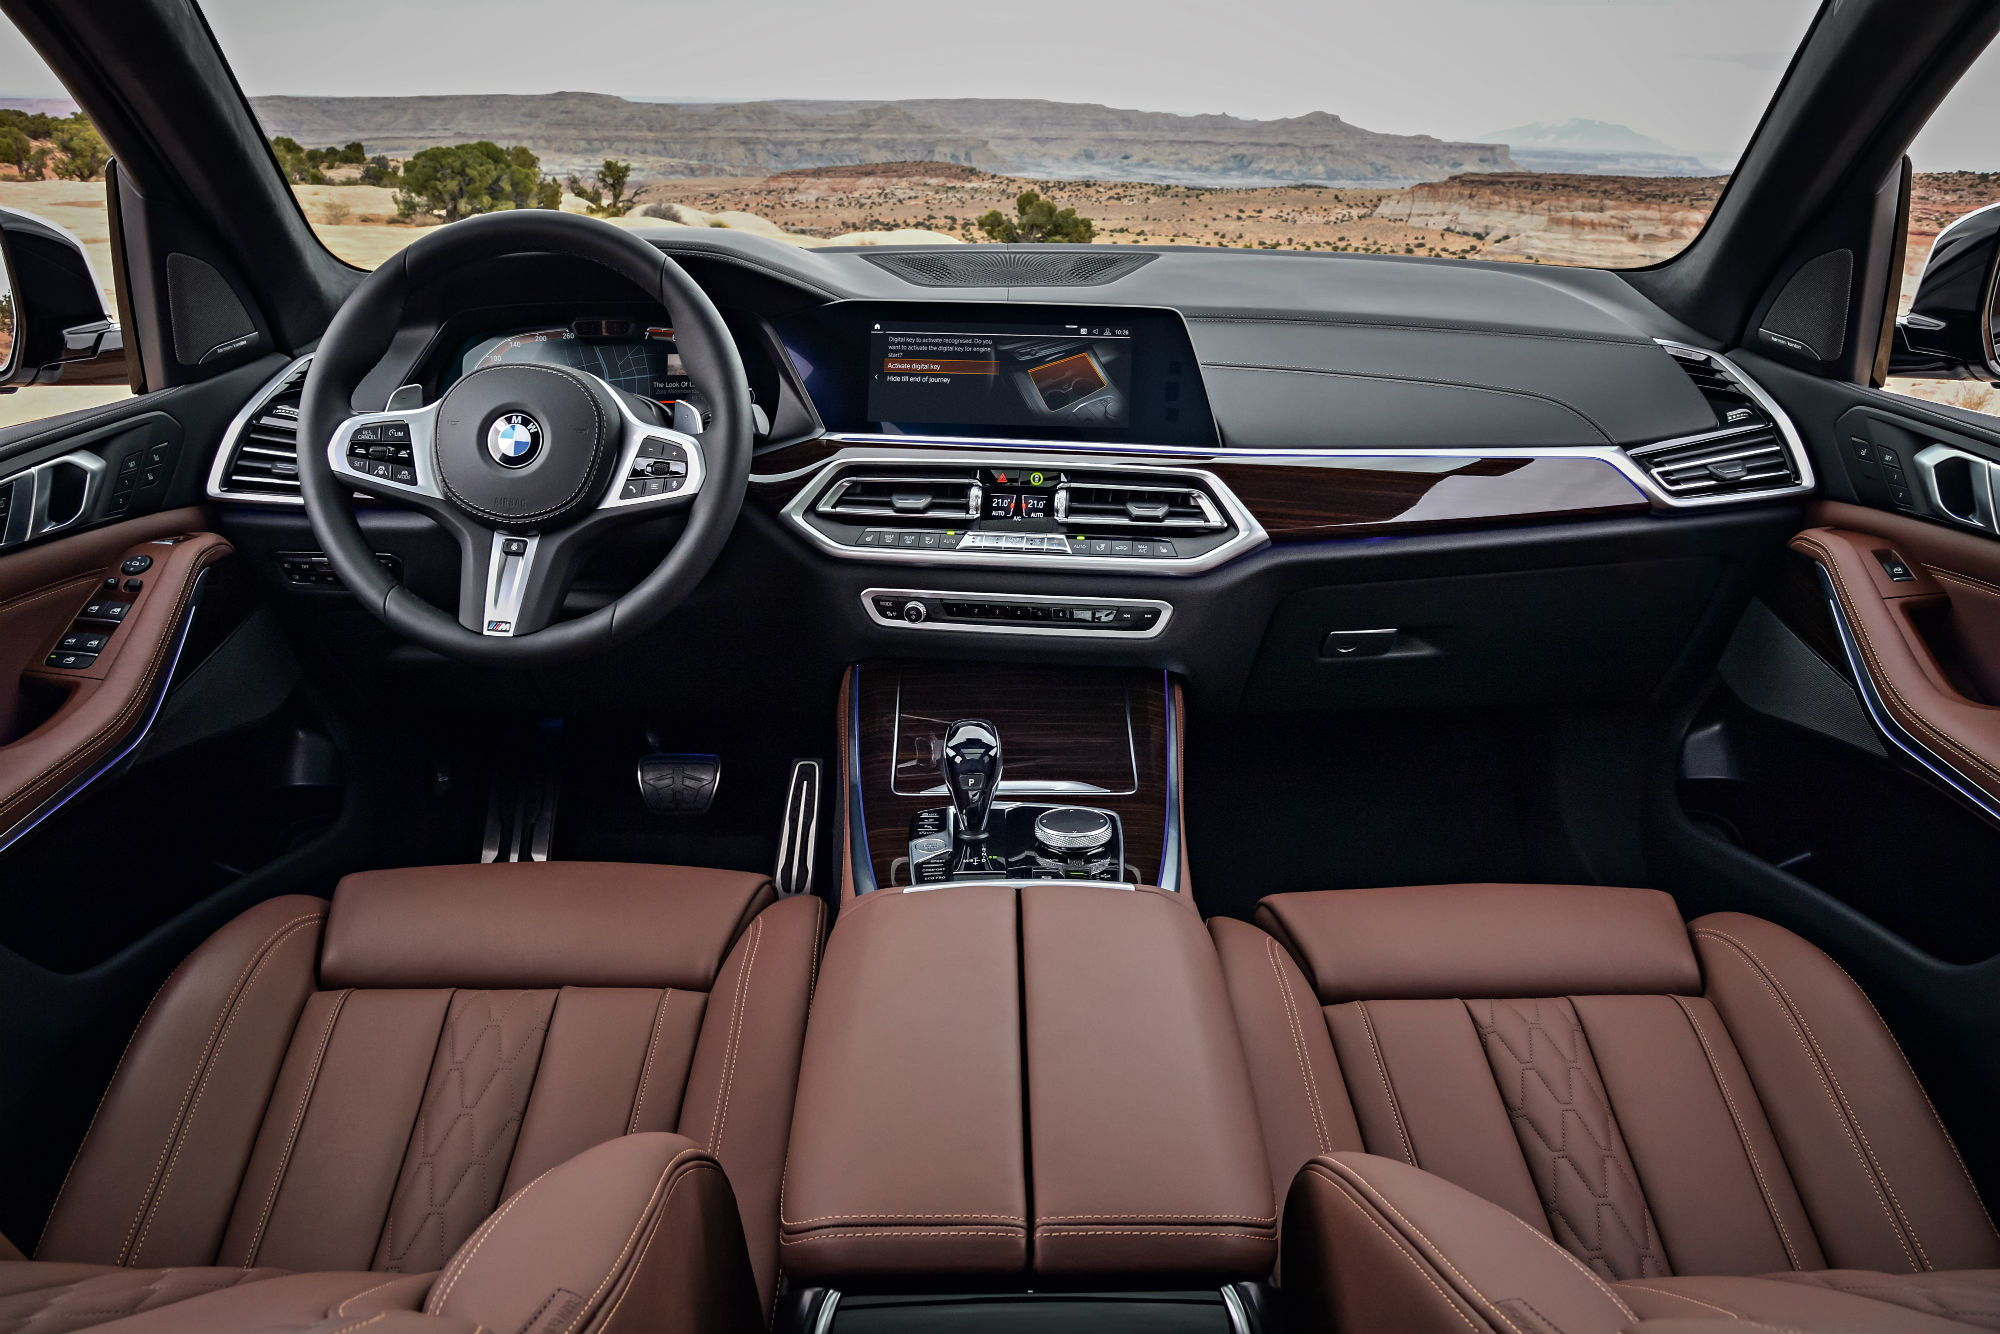 bmw x5 2019 price 2019 BMW X5 Deals, Prices, Incentives & Leases, Overview   CarsDirect bmw x5 2019 price